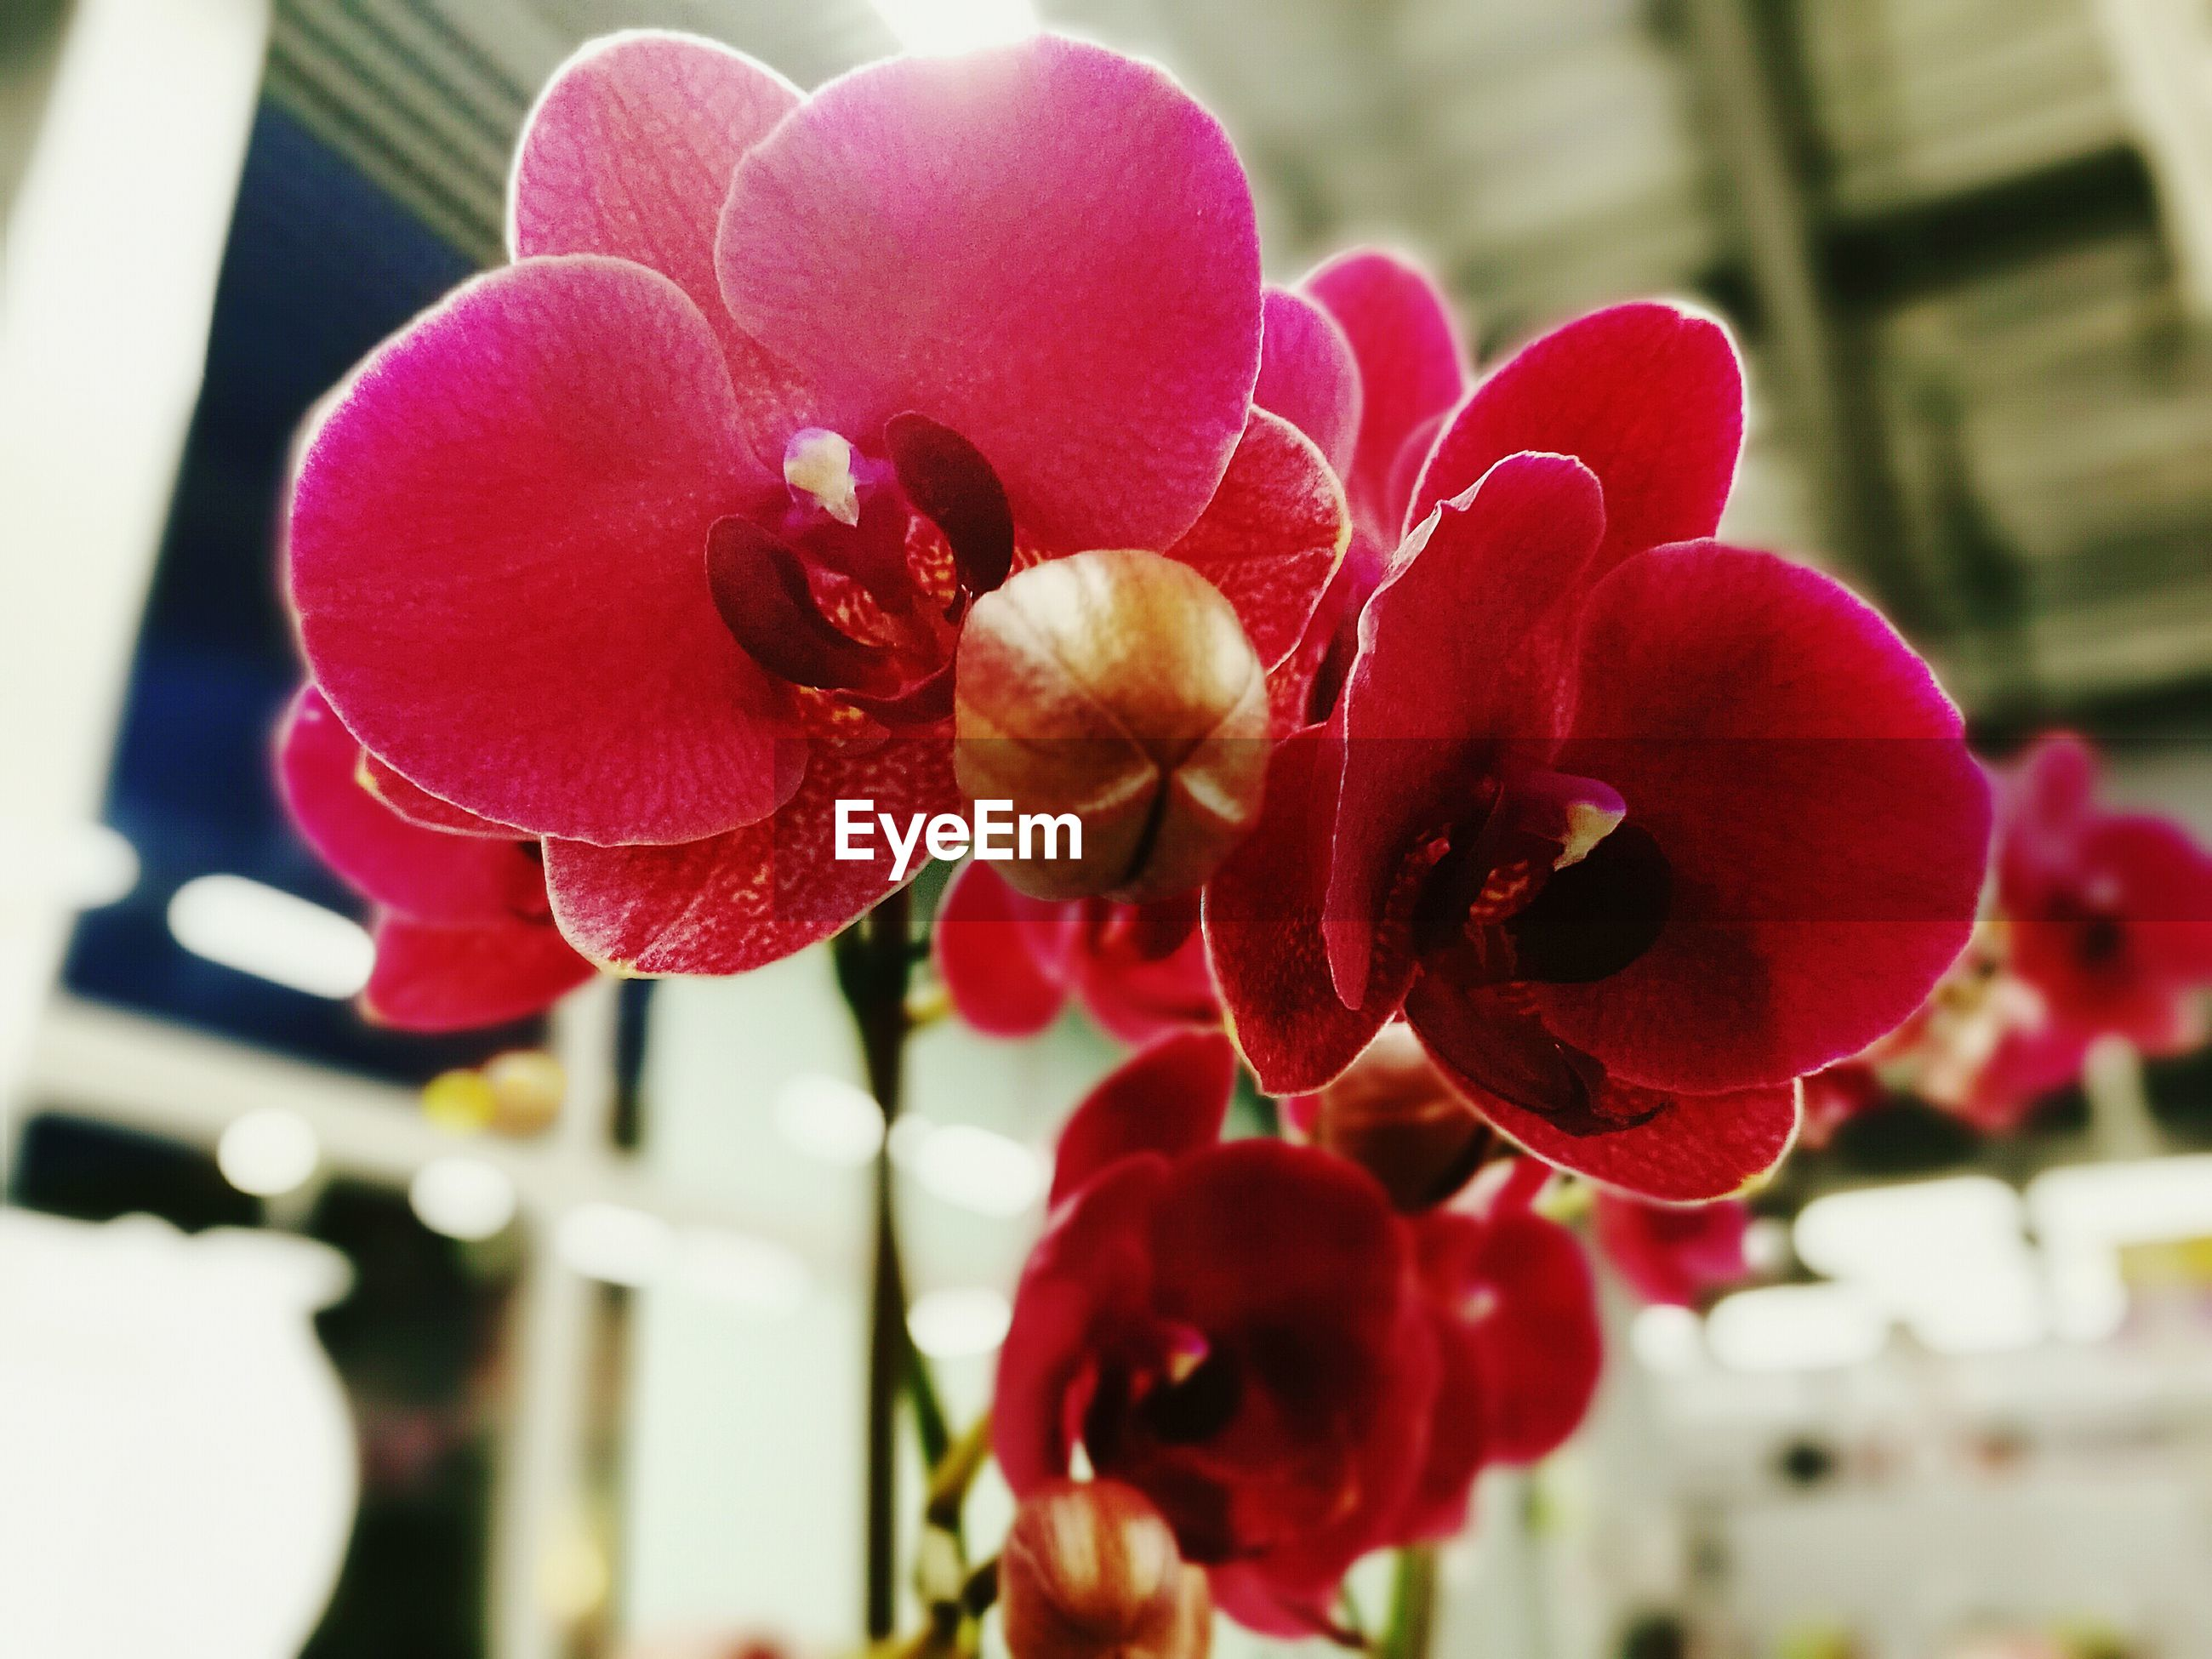 flower, focus on foreground, petal, red, fragility, freshness, flower head, close-up, beauty in nature, blooming, growth, nature, plant, day, indoors, no people, in bloom, bud, selective focus